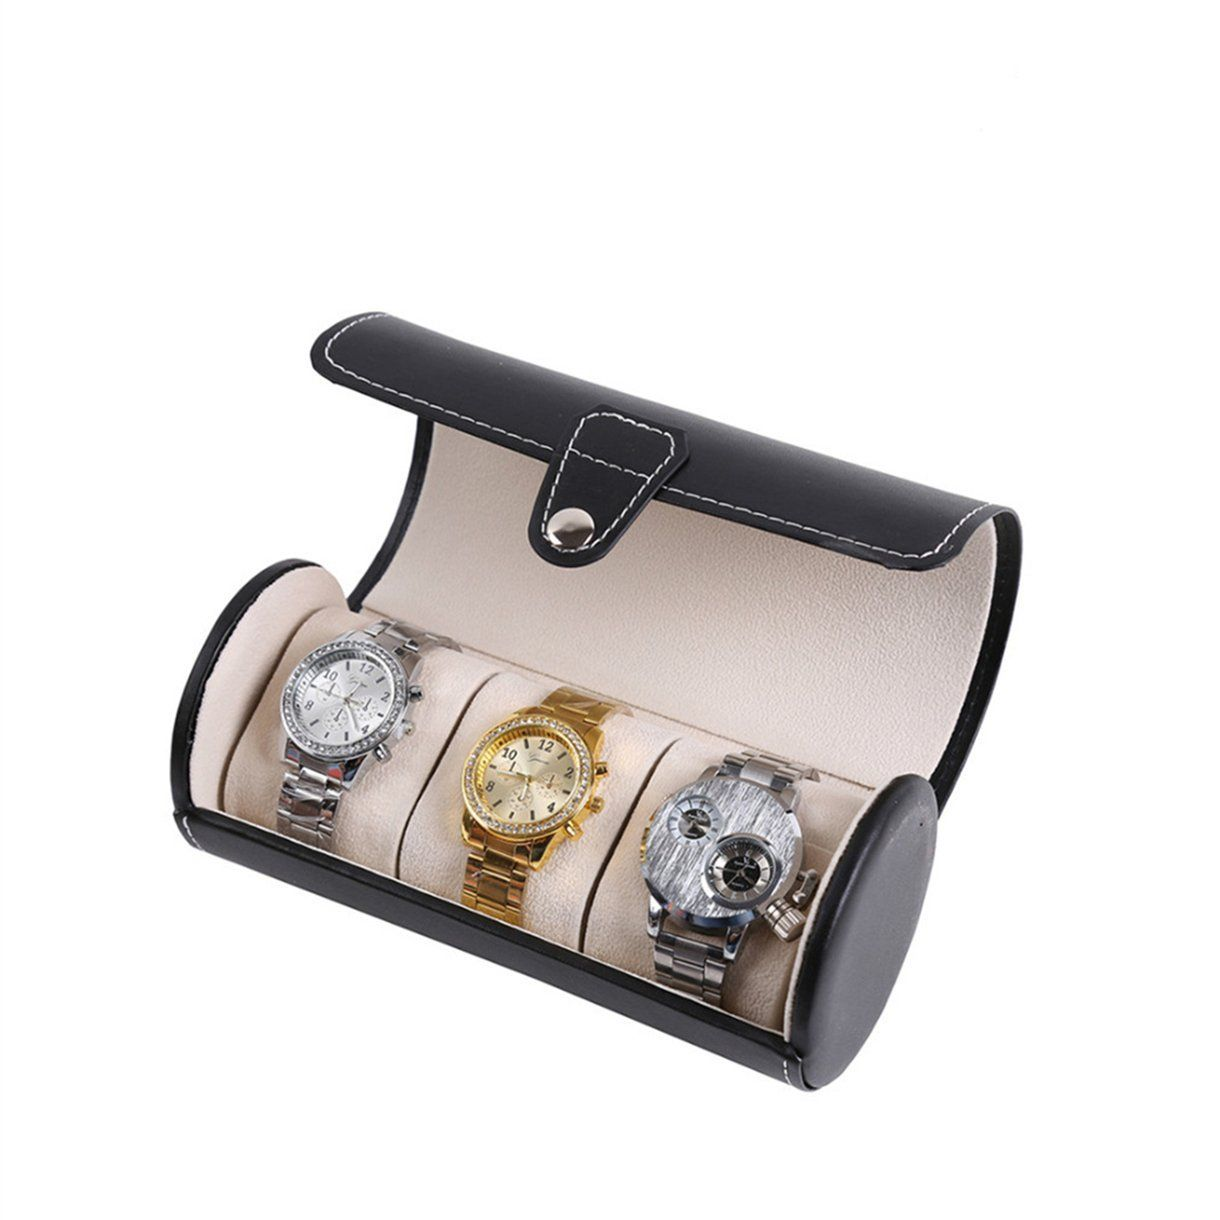 OrliverHL Watch Box 3 Mens Black Leather Display Glass Top Jewelry